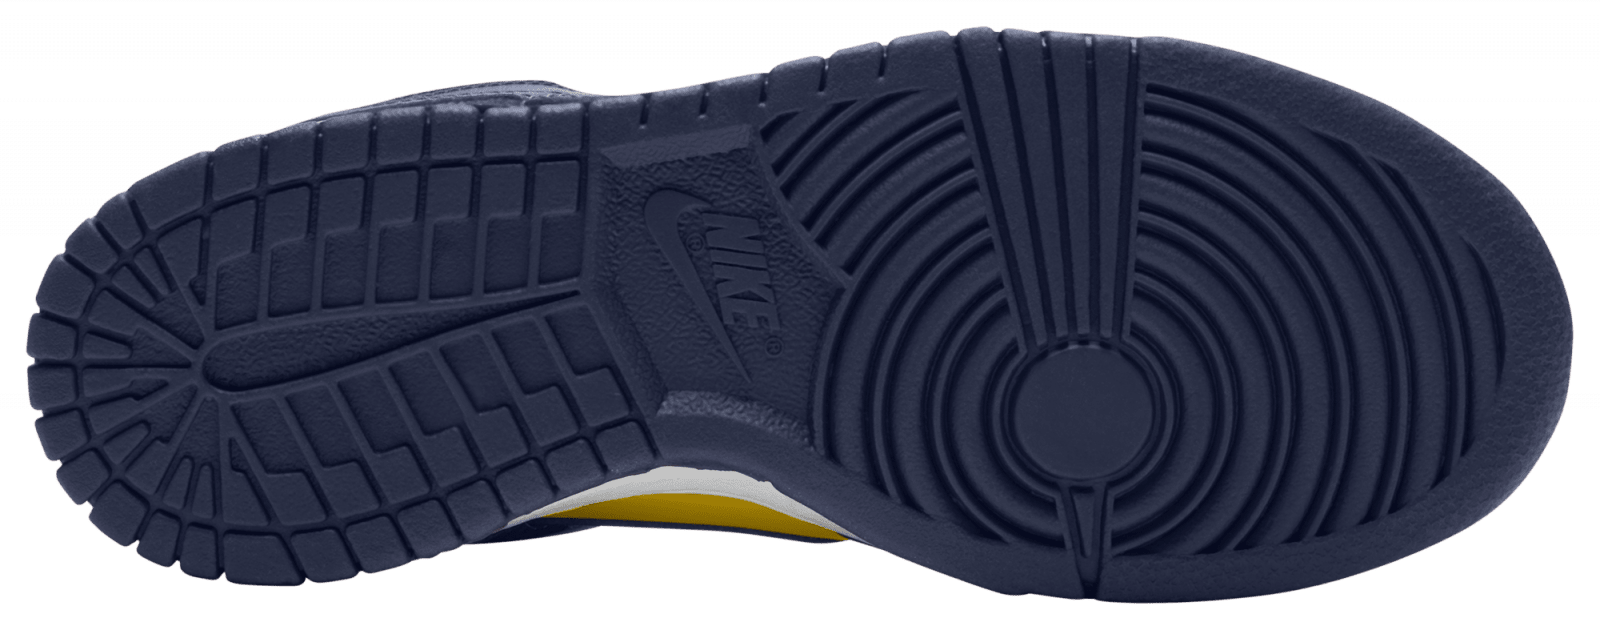 Nike Dunk Low GS 'Michigan' 2021 Outsole